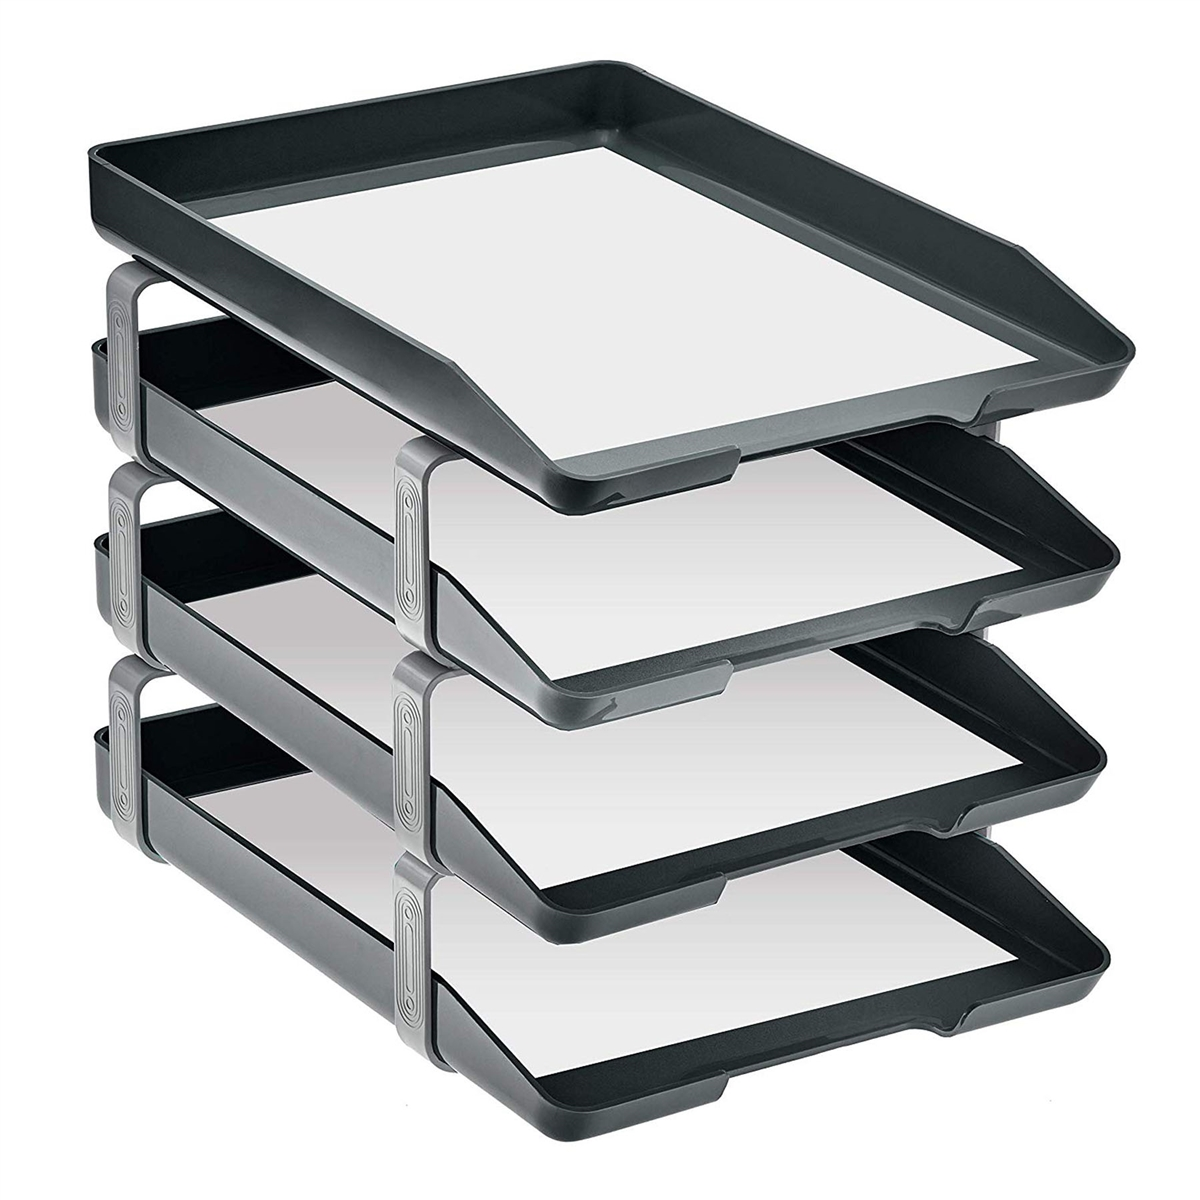 Acrimet Traditional Letter Tray 4 Tiers Front Load Design Black